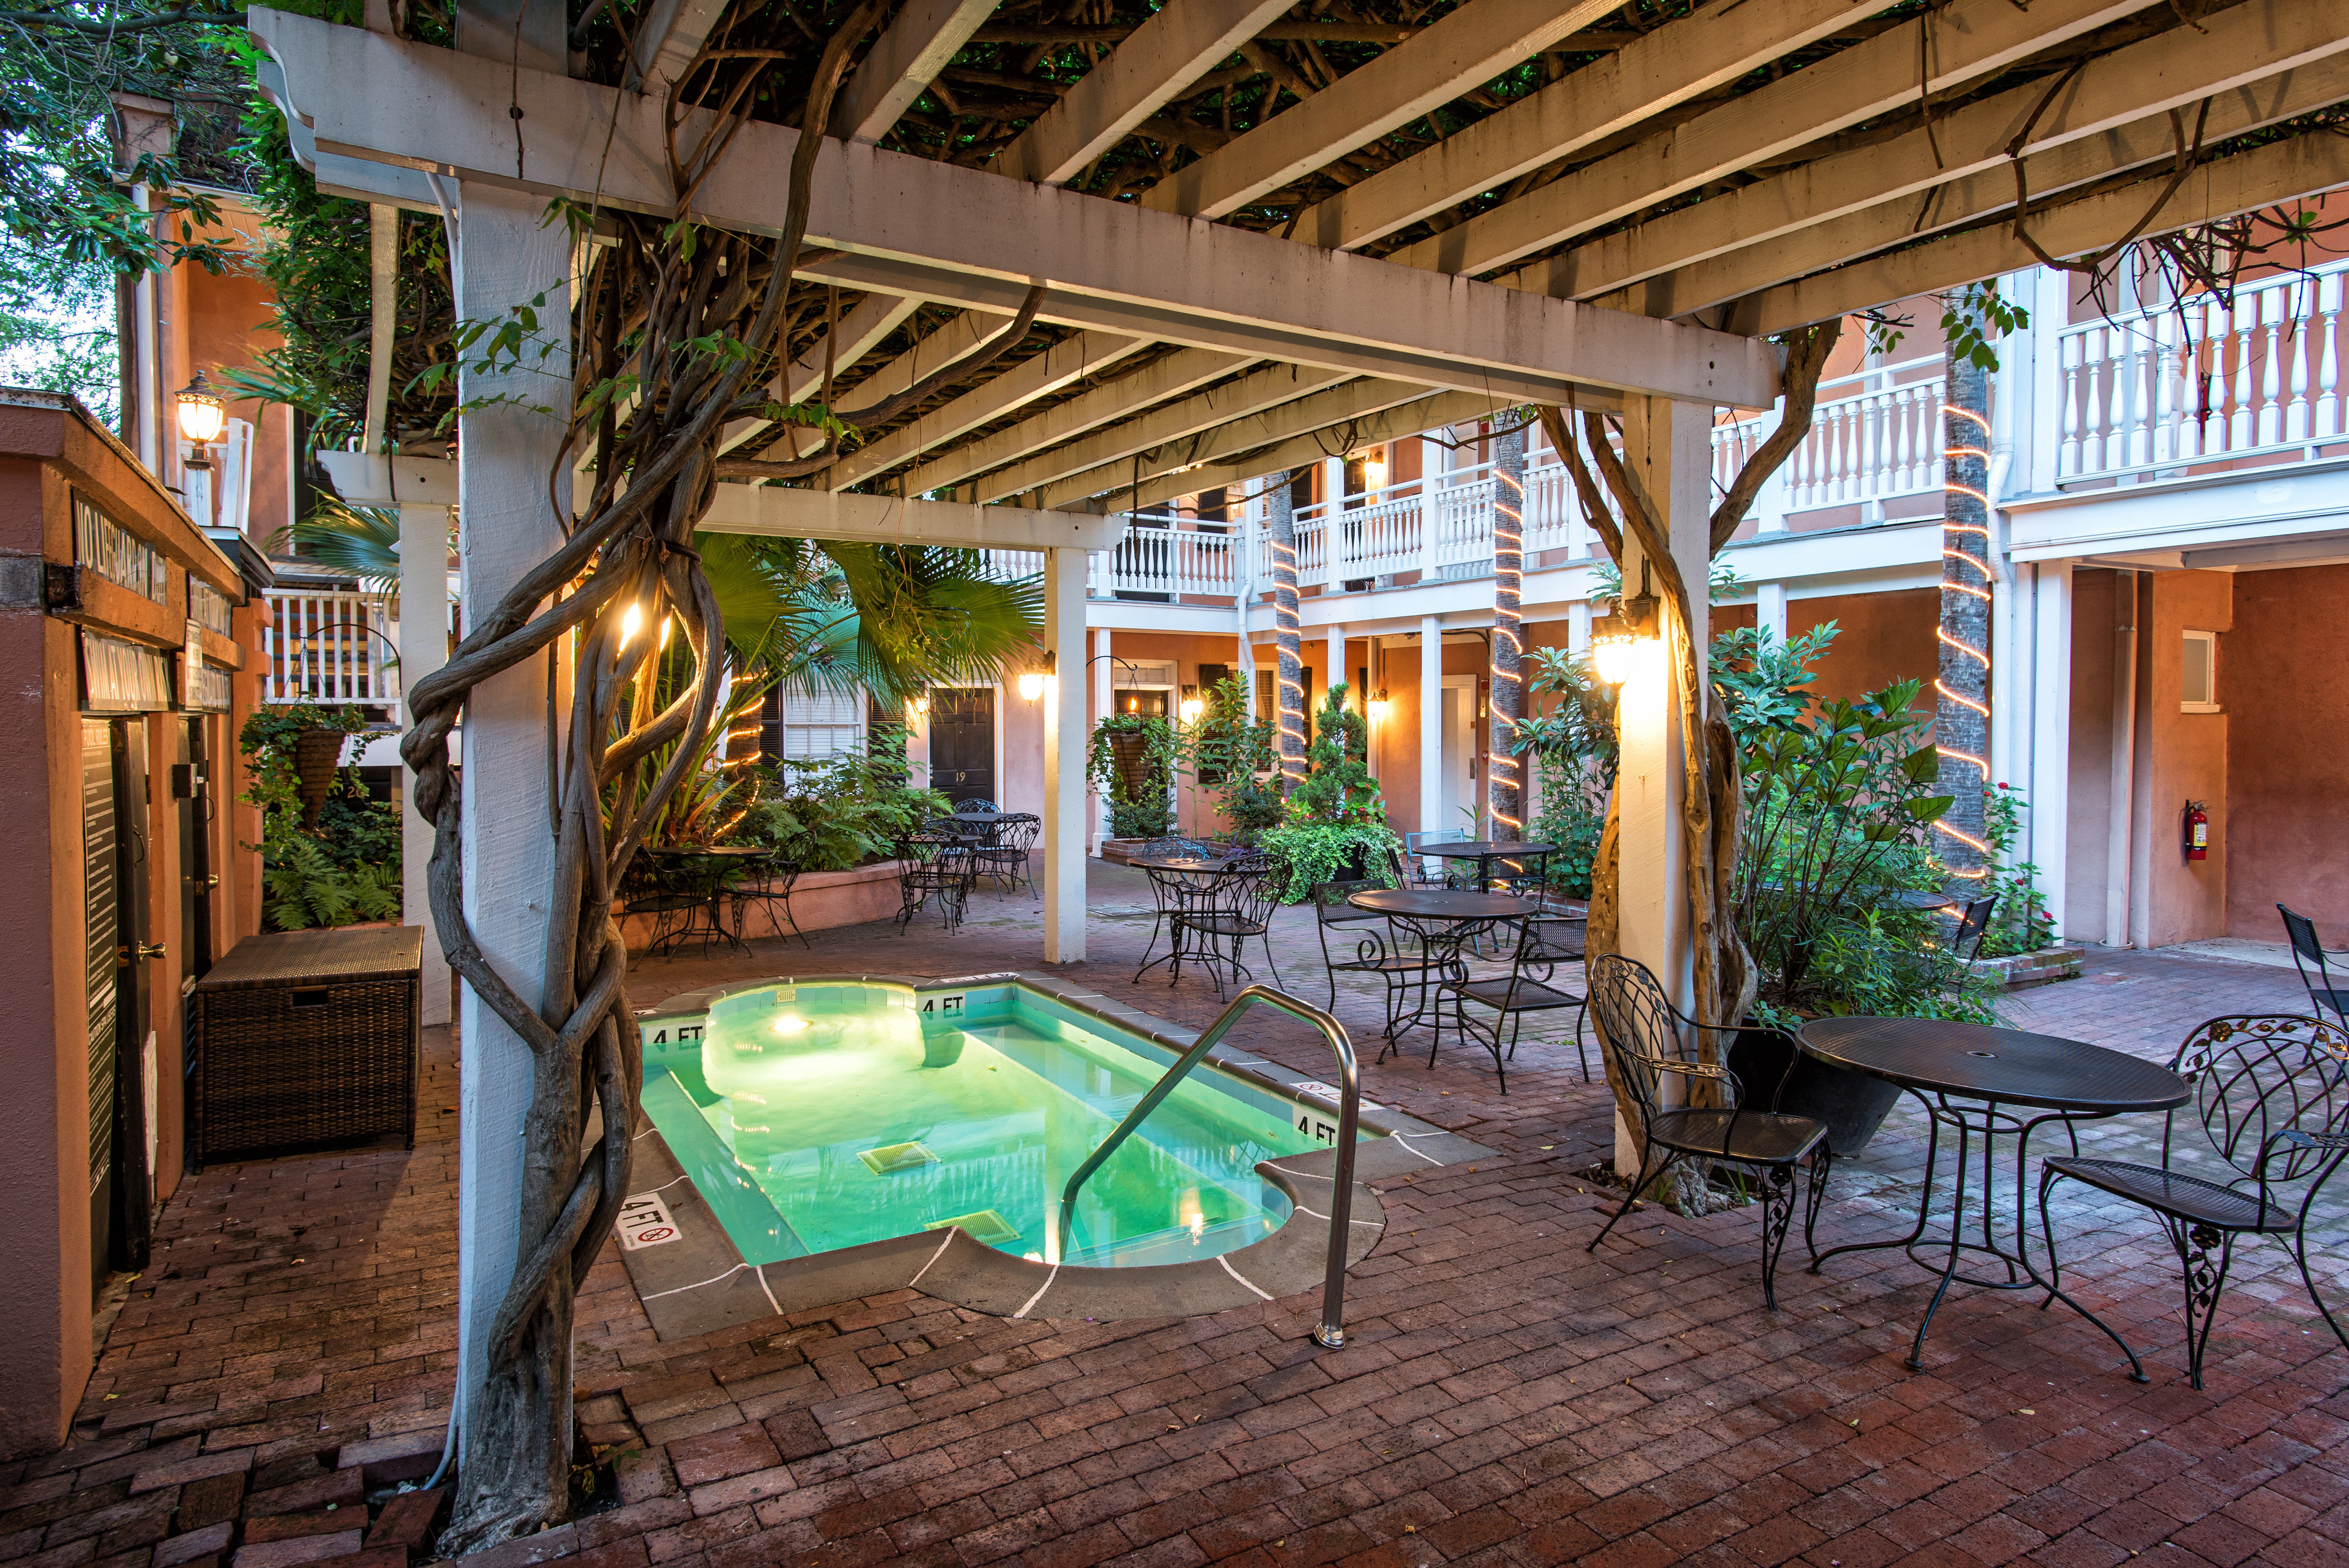 Country Courtyard Historic Inn Lounge Patio Pool Terrace building property house Resort backyard home Villa outdoor structure mansion cottage porch hacienda